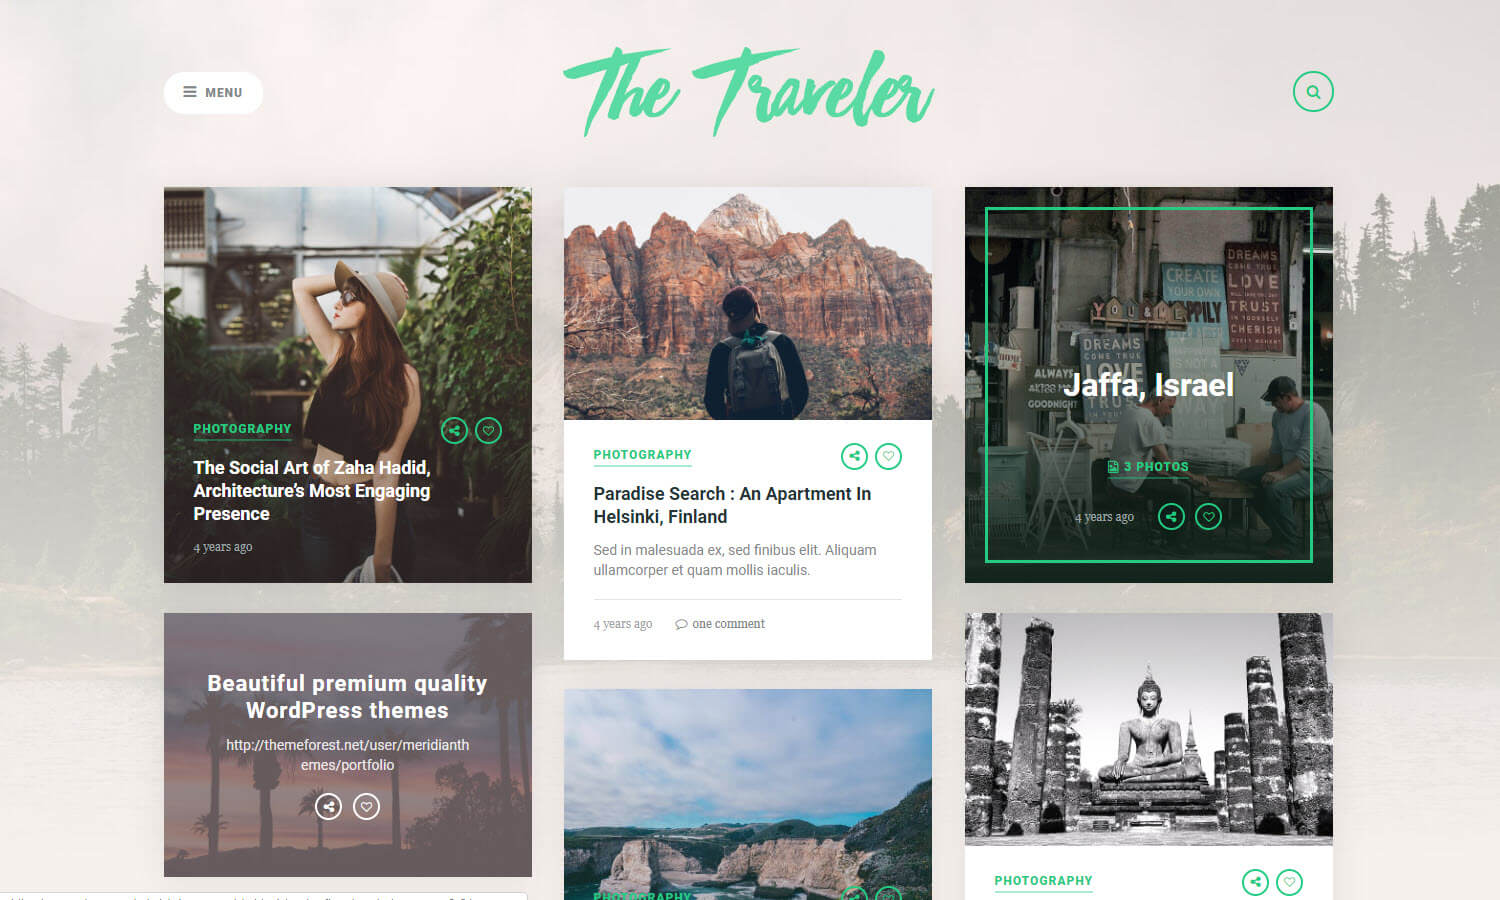 The Traveler screenshot